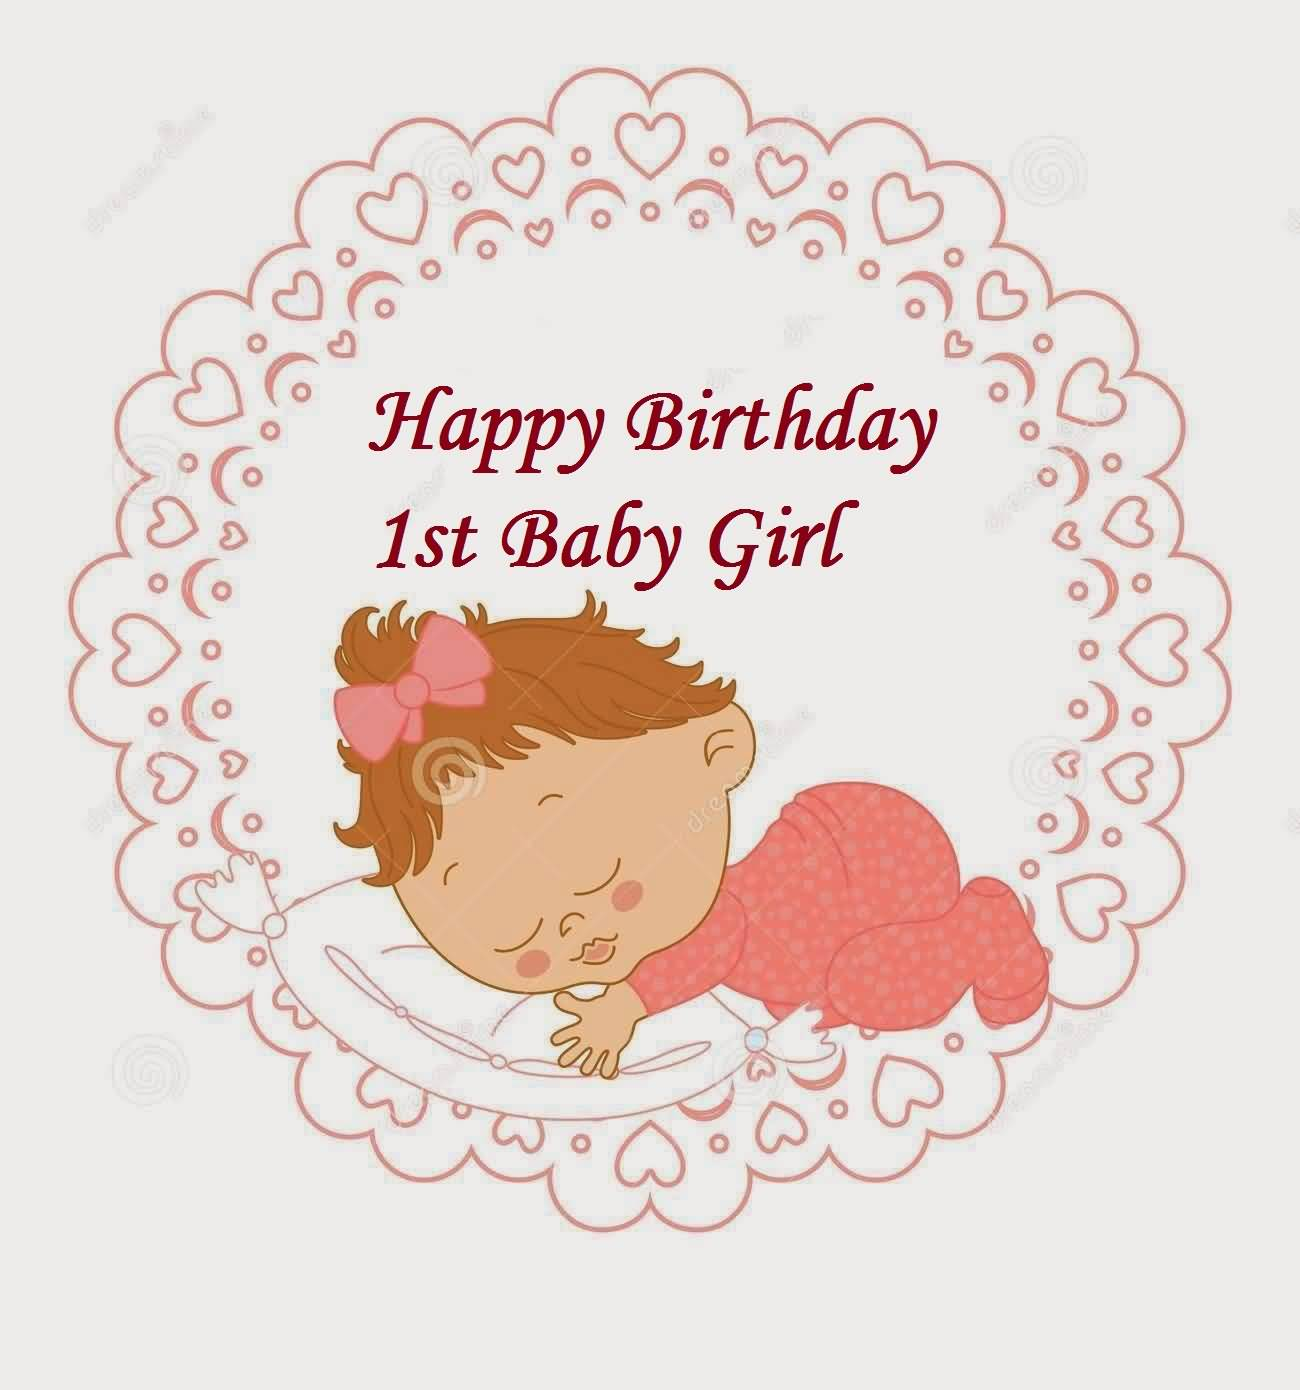 Cute E-Card Birthday Wishes For Baby Girl